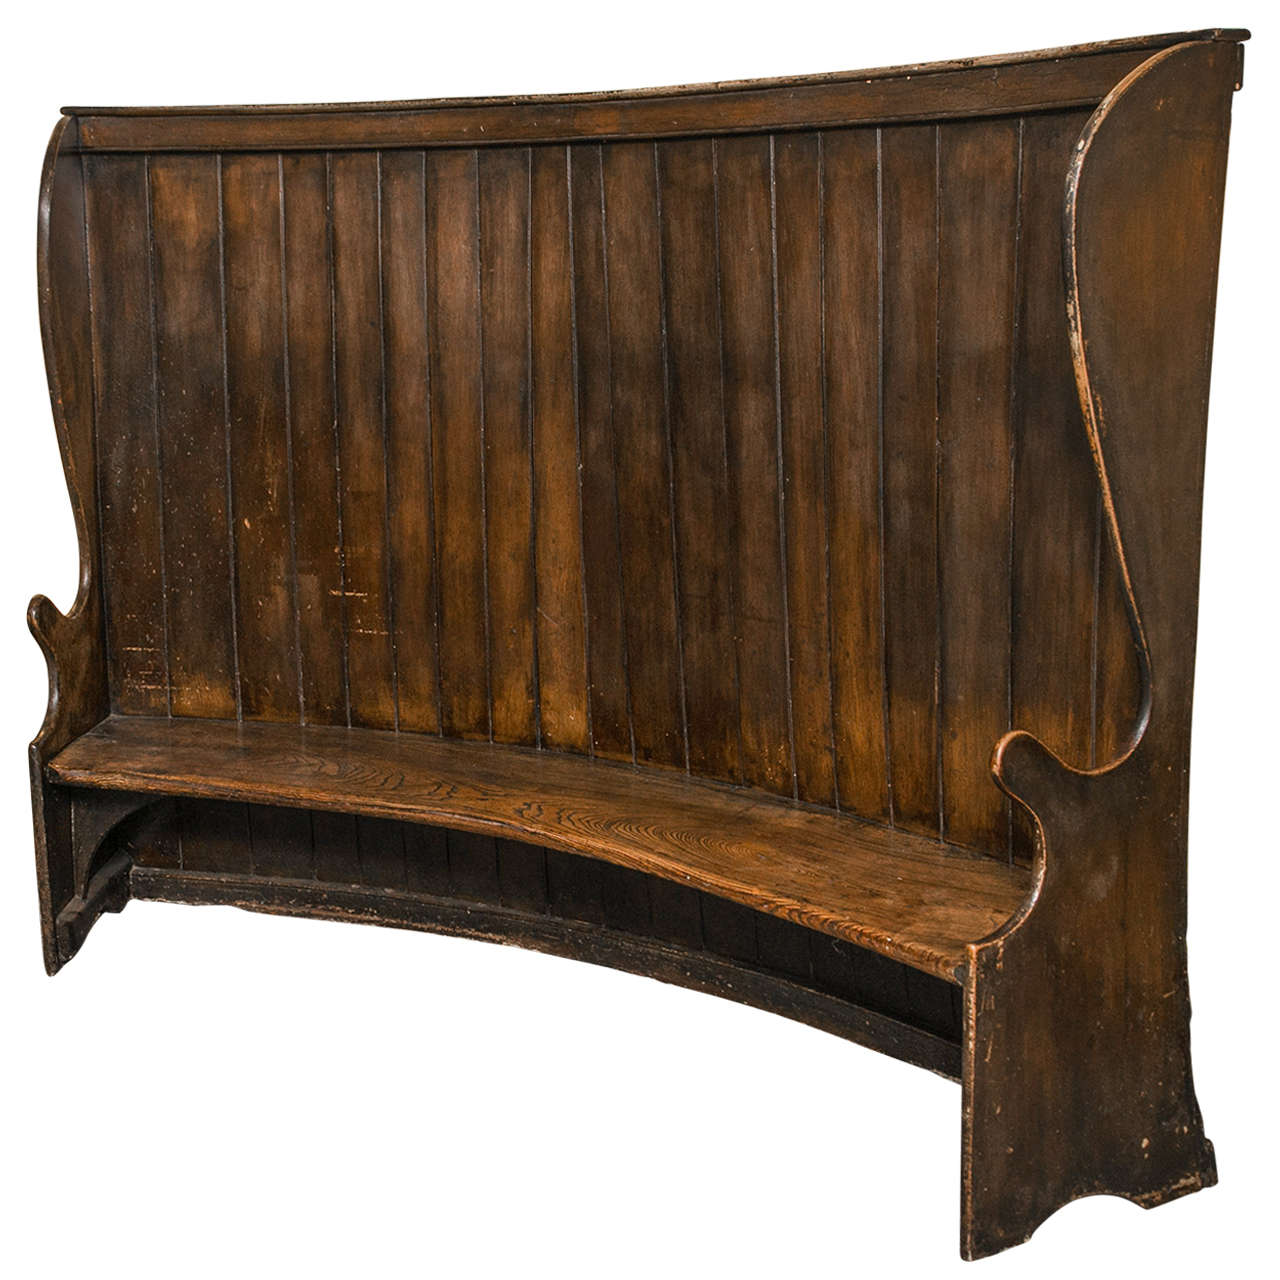 Very Rare English Settle Bench At 1stdibs